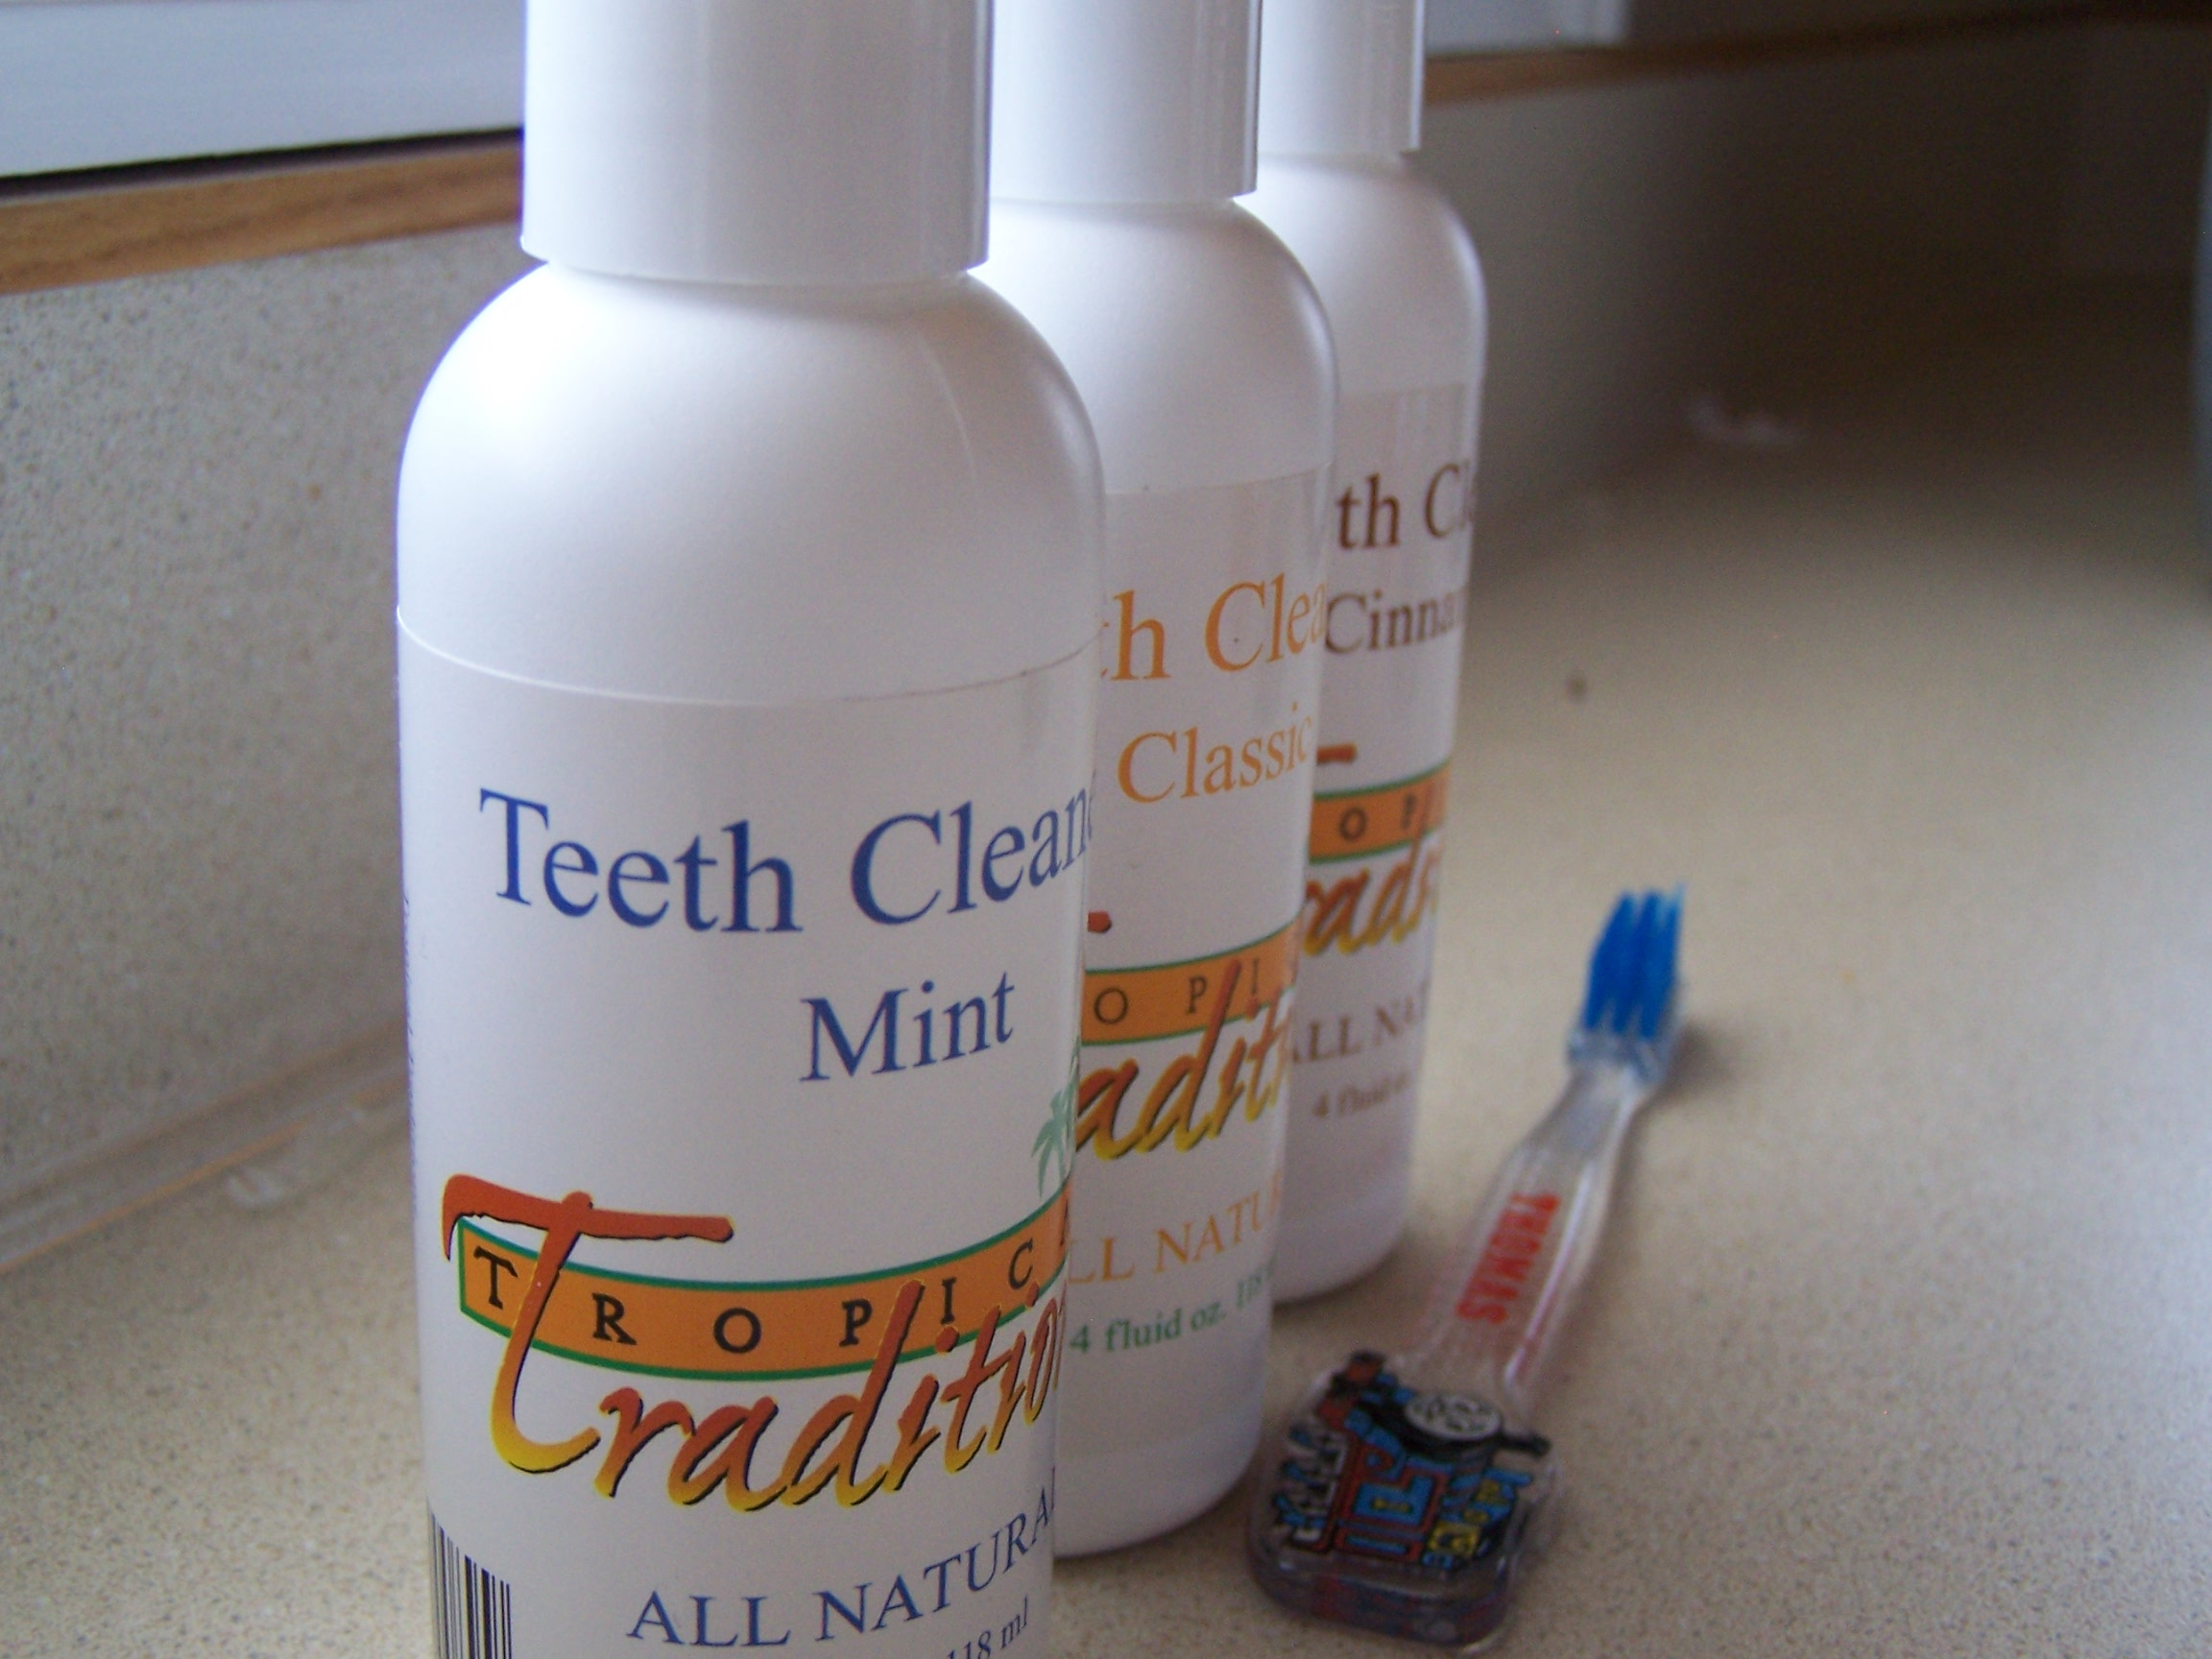 All Natural Teeth Cleaner